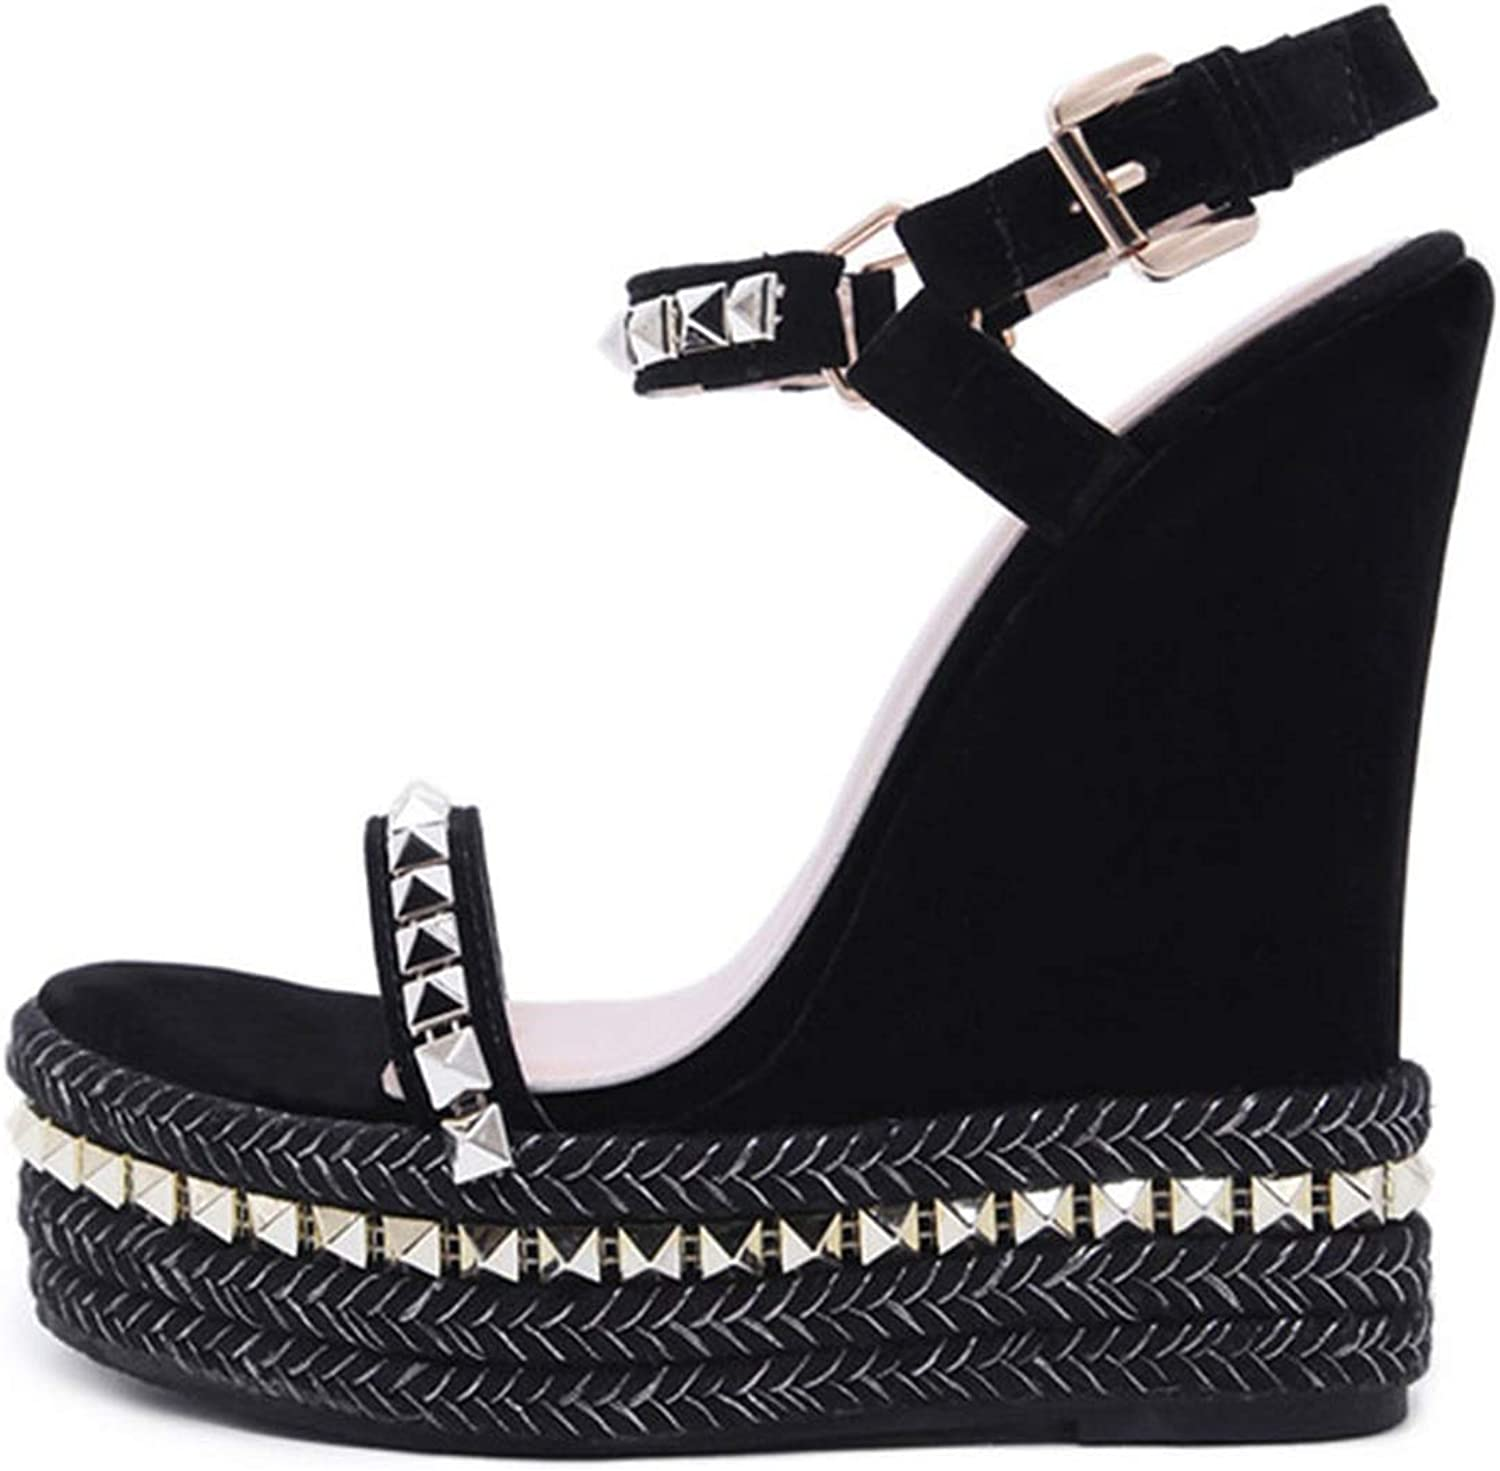 Rome Style Comfortable Wedges Sandals Platform shoes Woman Crystal Gladiator Sandals